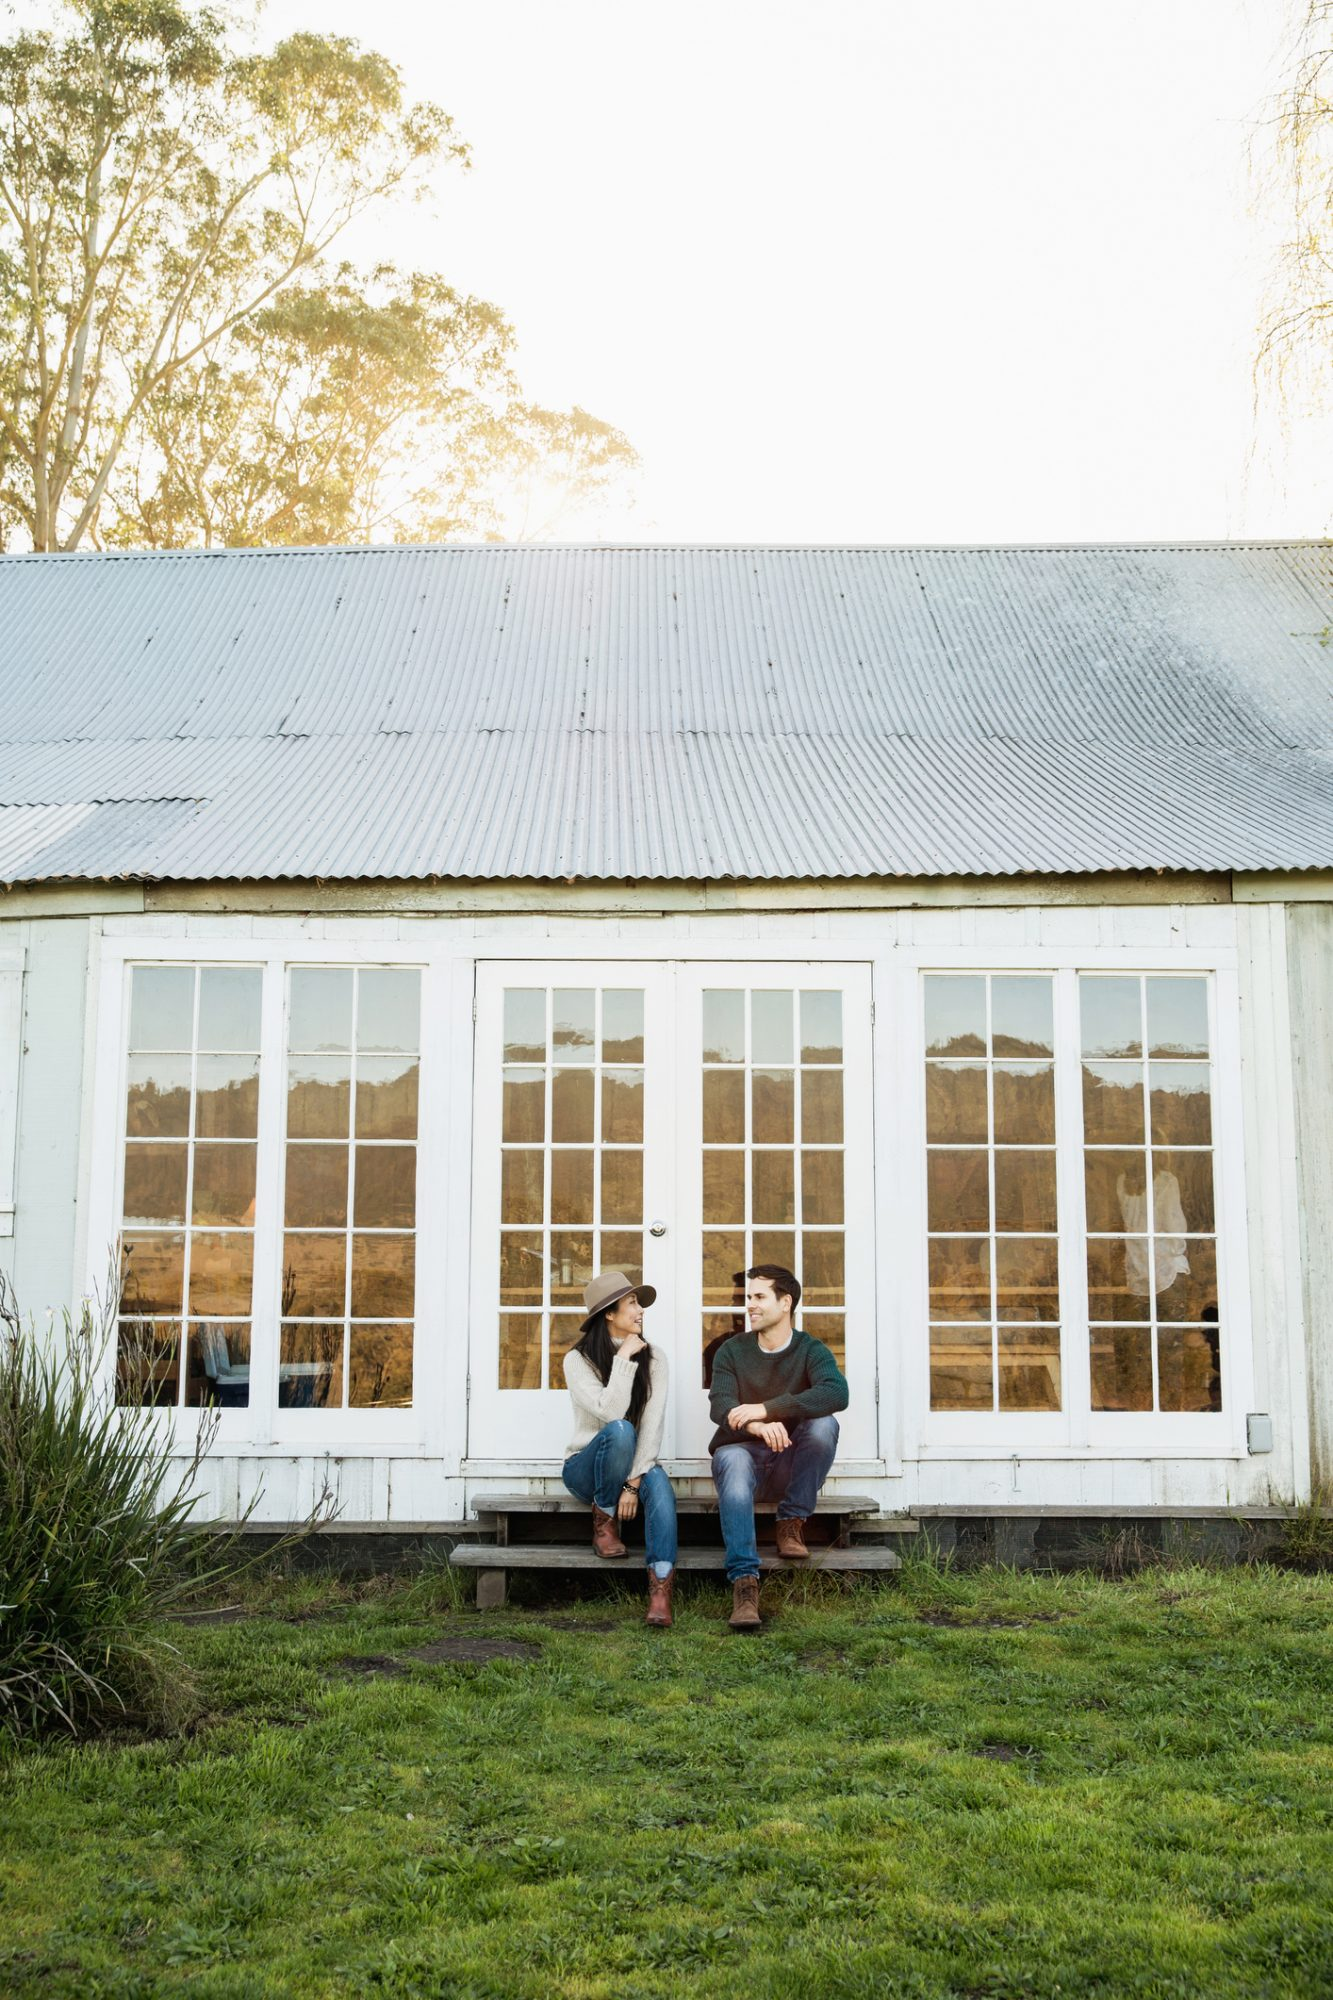 The Questions I Wish I Had Asked Before I Bought My Country House